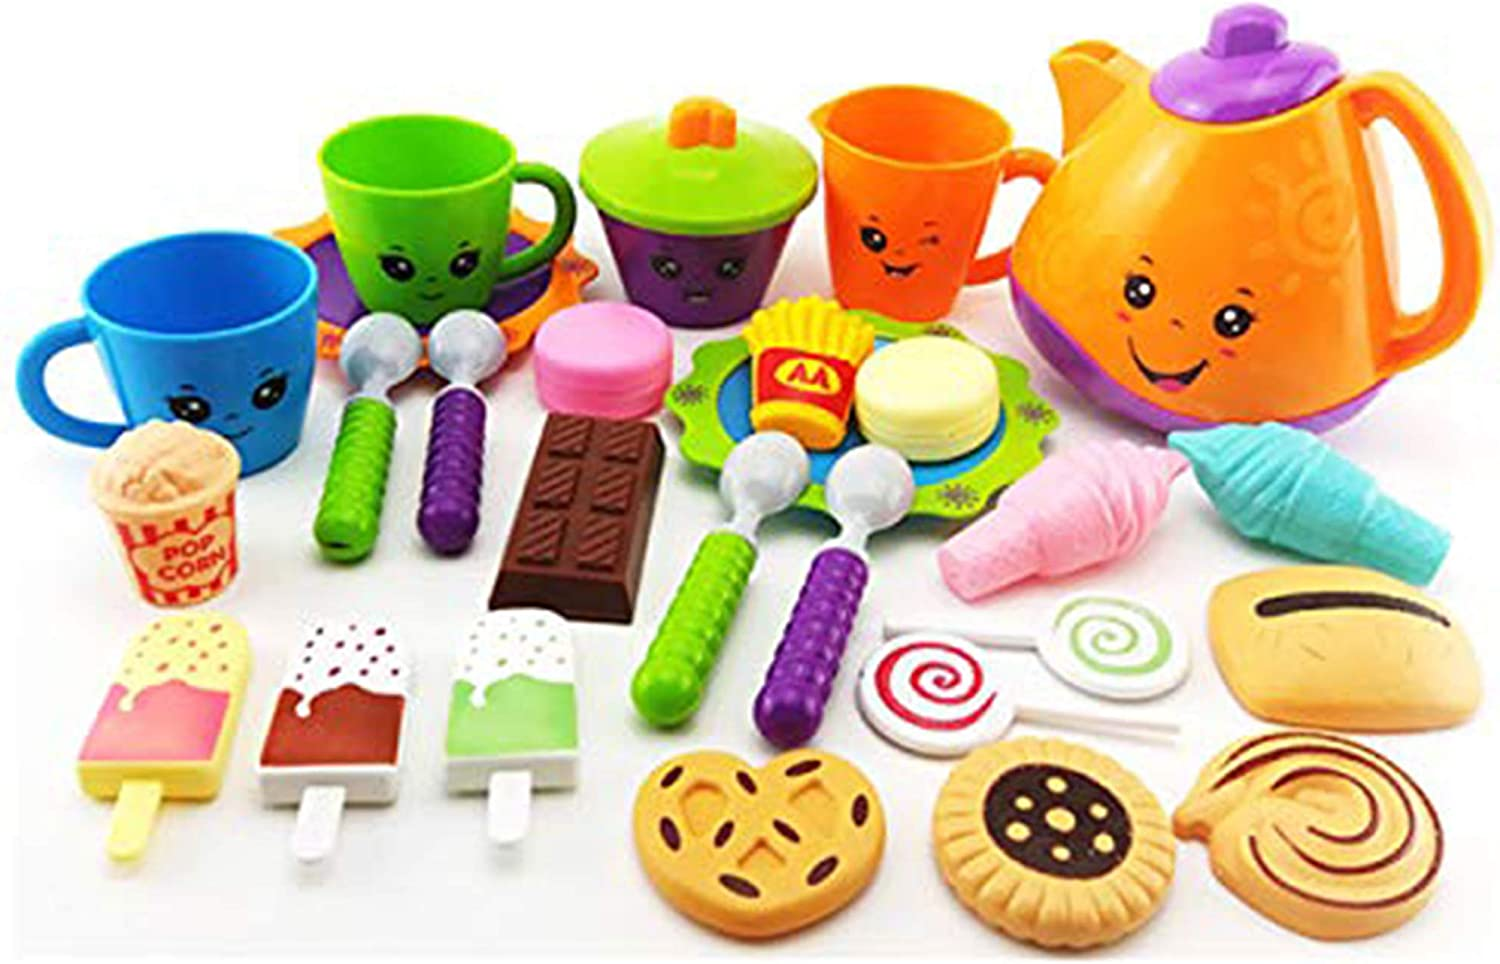 BAIVYLE Kitchen Toys Tea Party Pretend Playset for Kids - Fine Skills Development ,Pretend Play Girls Cookware Set for Toddlers 3 Years(28pcs)